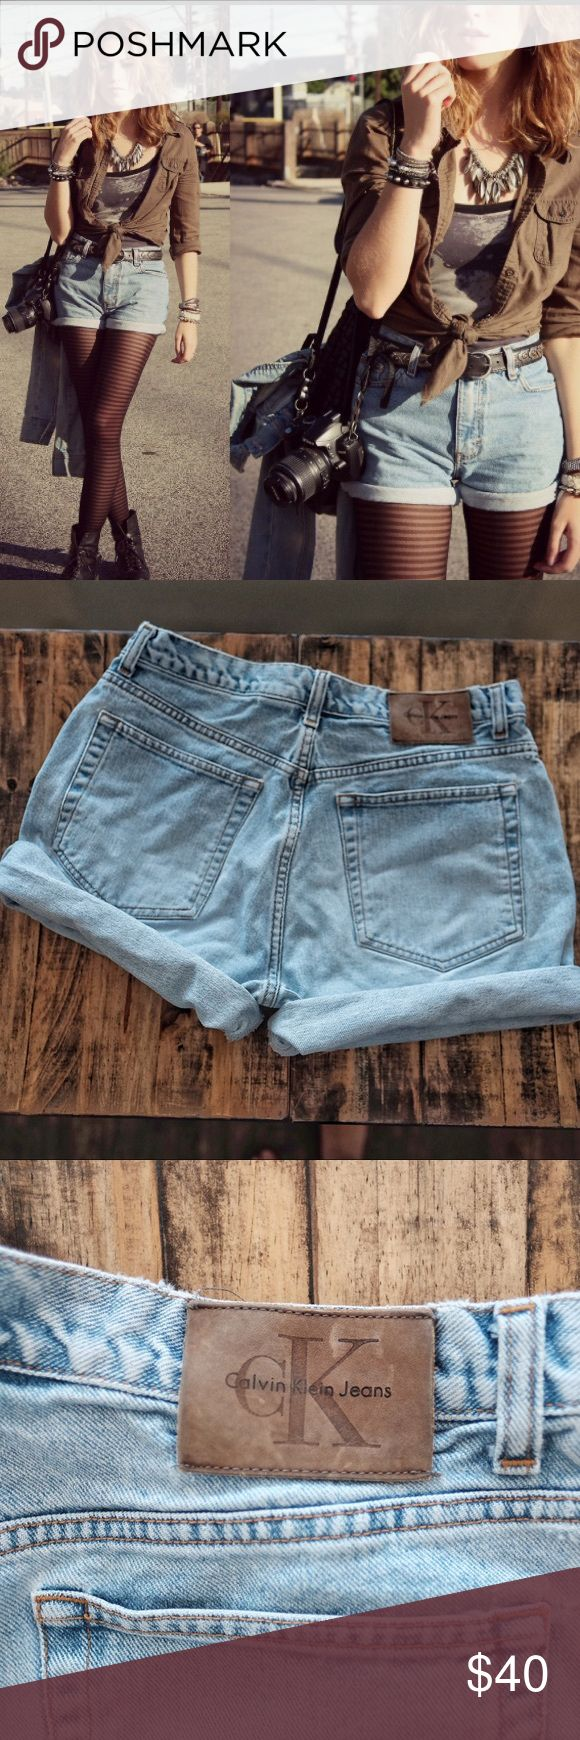 """Calvin Klein Vintage High Waisted Jean Shorts Calvin Klein Vintage High Waisted Jean Shorts. Classic pair of Calvin Klein high waisted jean shorts perfect for summer! In EUC no stains holes ripe or tears. Comes from a pet free and smoke free home. Medium light wash. Size 11. Please note measurements as this size runs small! Rise (crotch to waist): 12"""" Inseam unrolled: 4.5"""" Waist across: 15.5"""". Happy poshing! Calvin Klein Jeans Shorts Jean Shorts"""